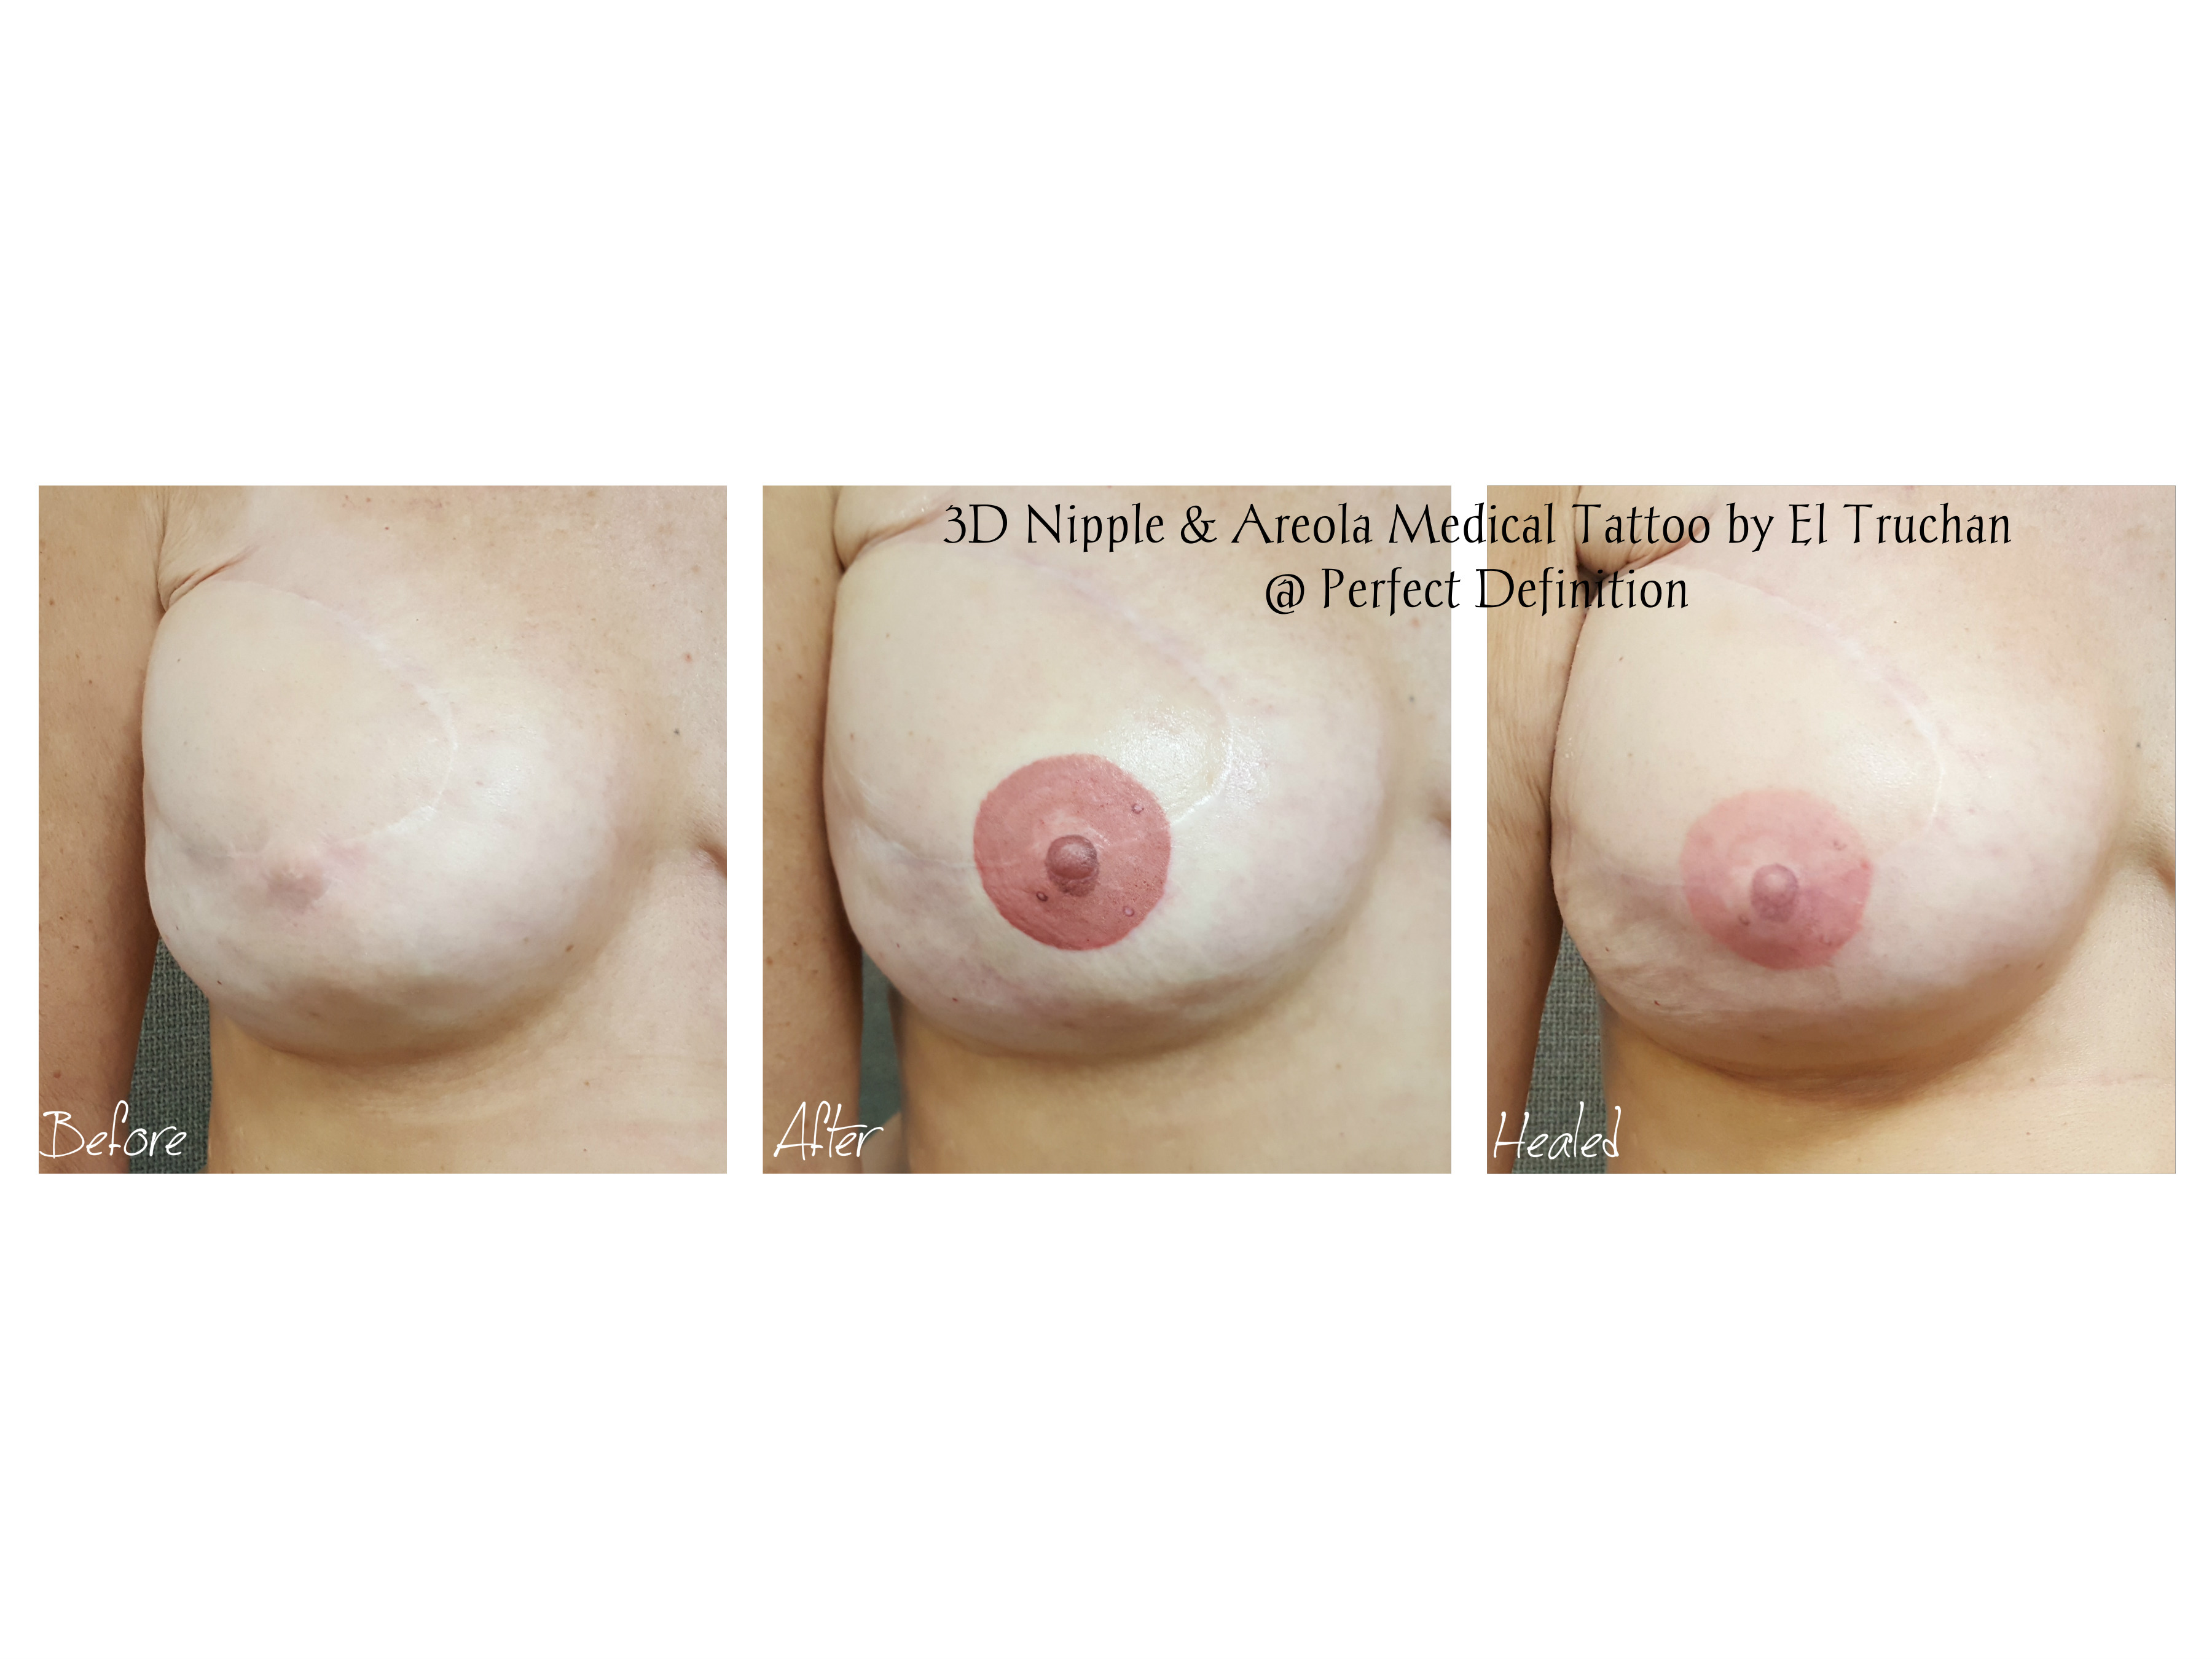 3d Nipple & Areola Medical Tattoo by El Truchan _ Perfect Definition London1